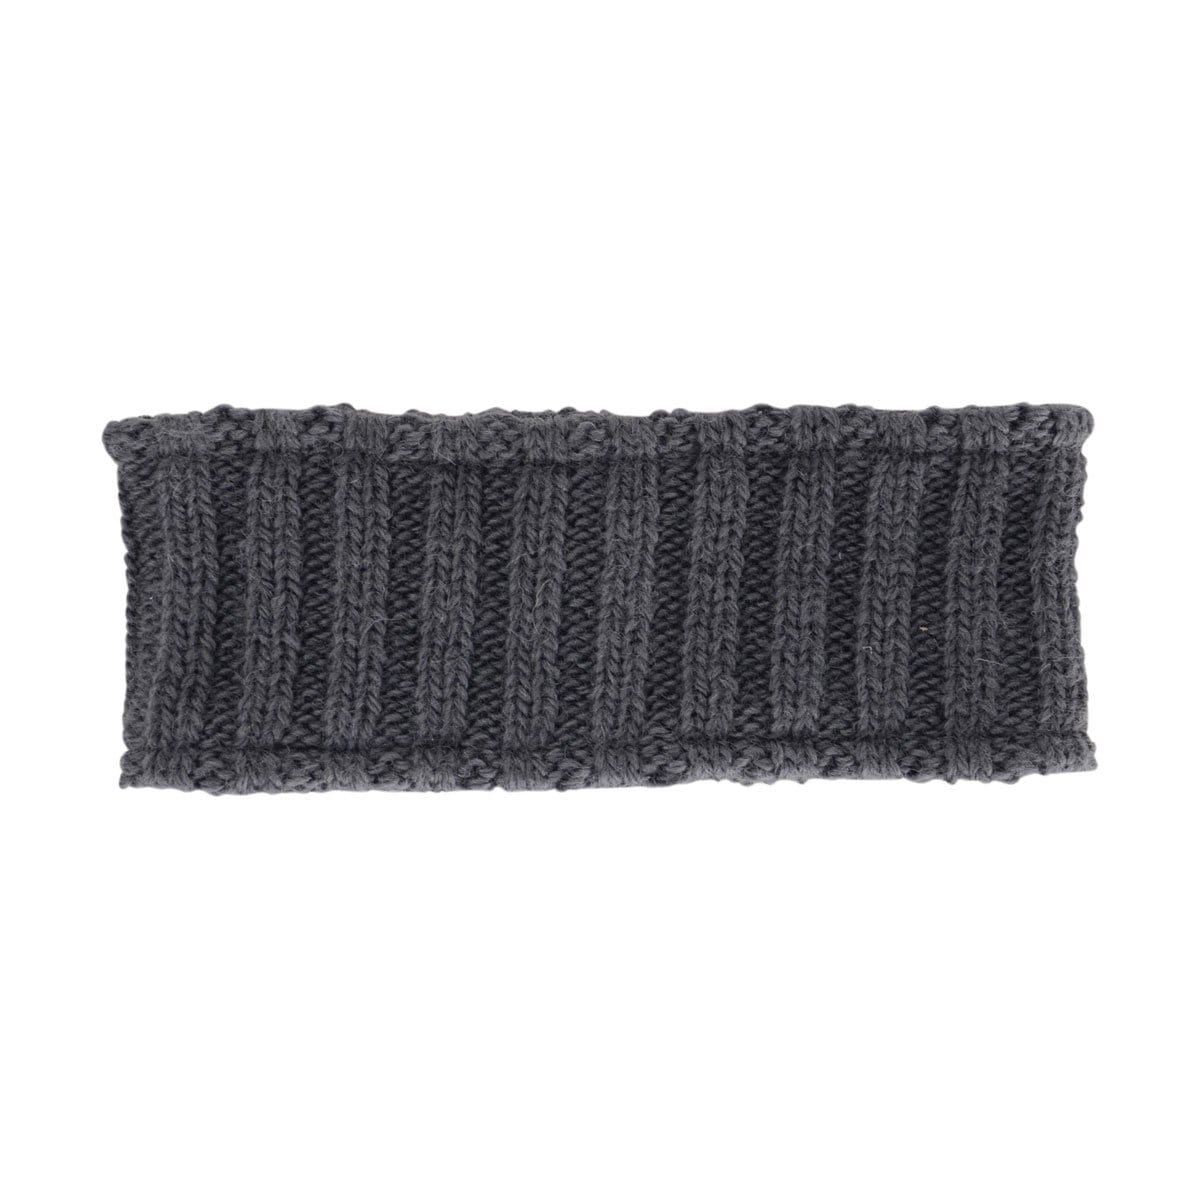 HyFASHION Galloway Knitted Headband Grey 15423.